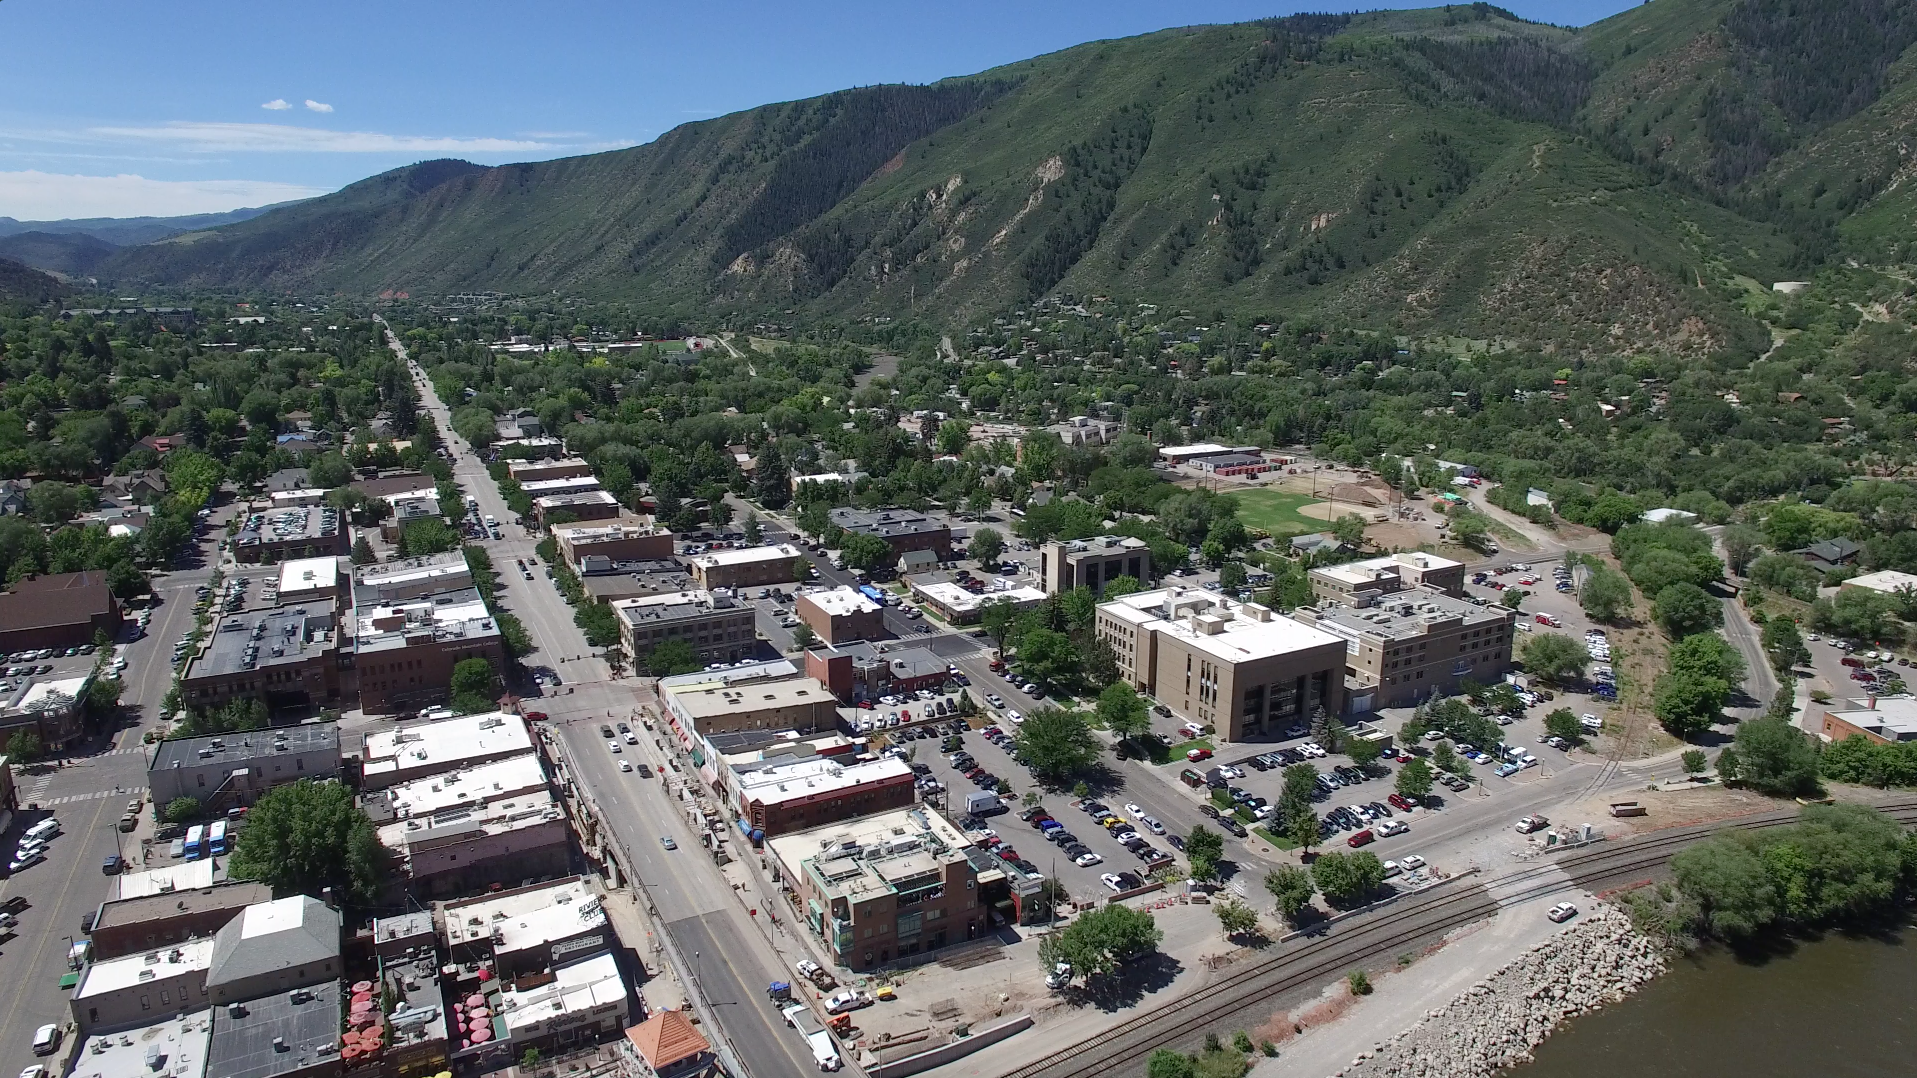 Aerial view of Glenwood Springs, Colorado